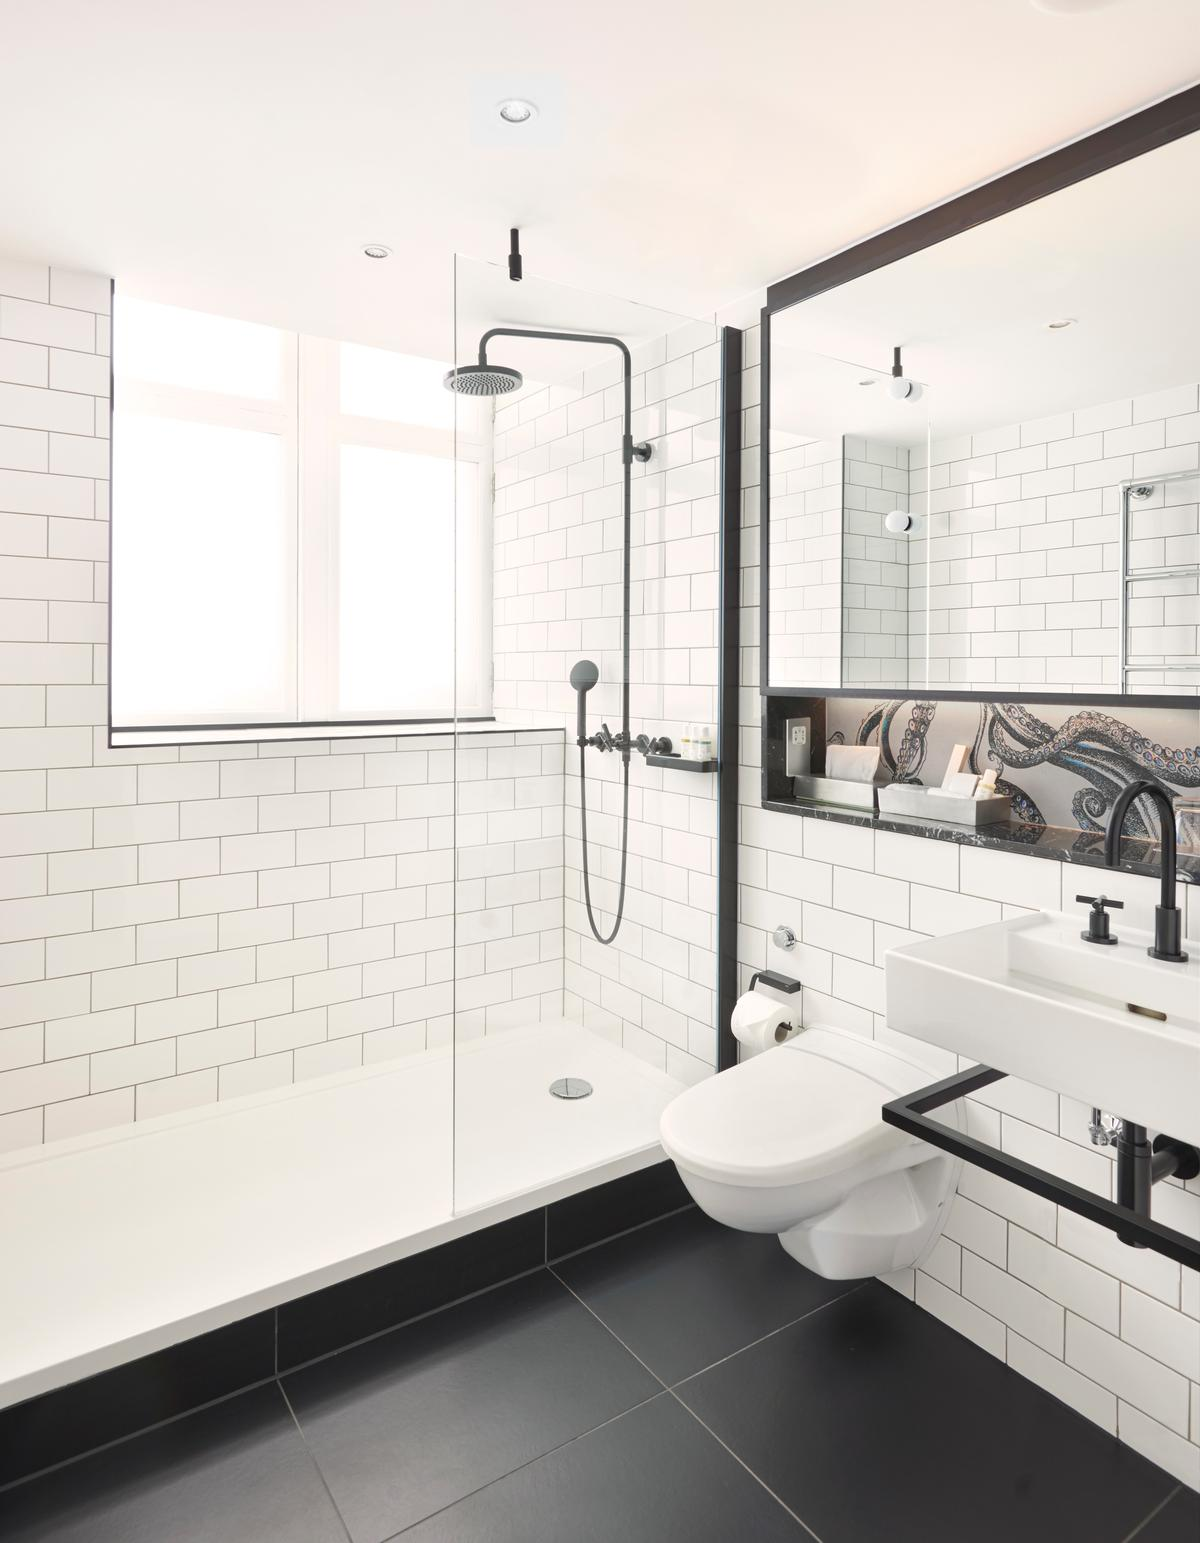 The Bathrooms Preserve Metro Tiles From Original Design Complemented By A Number Of